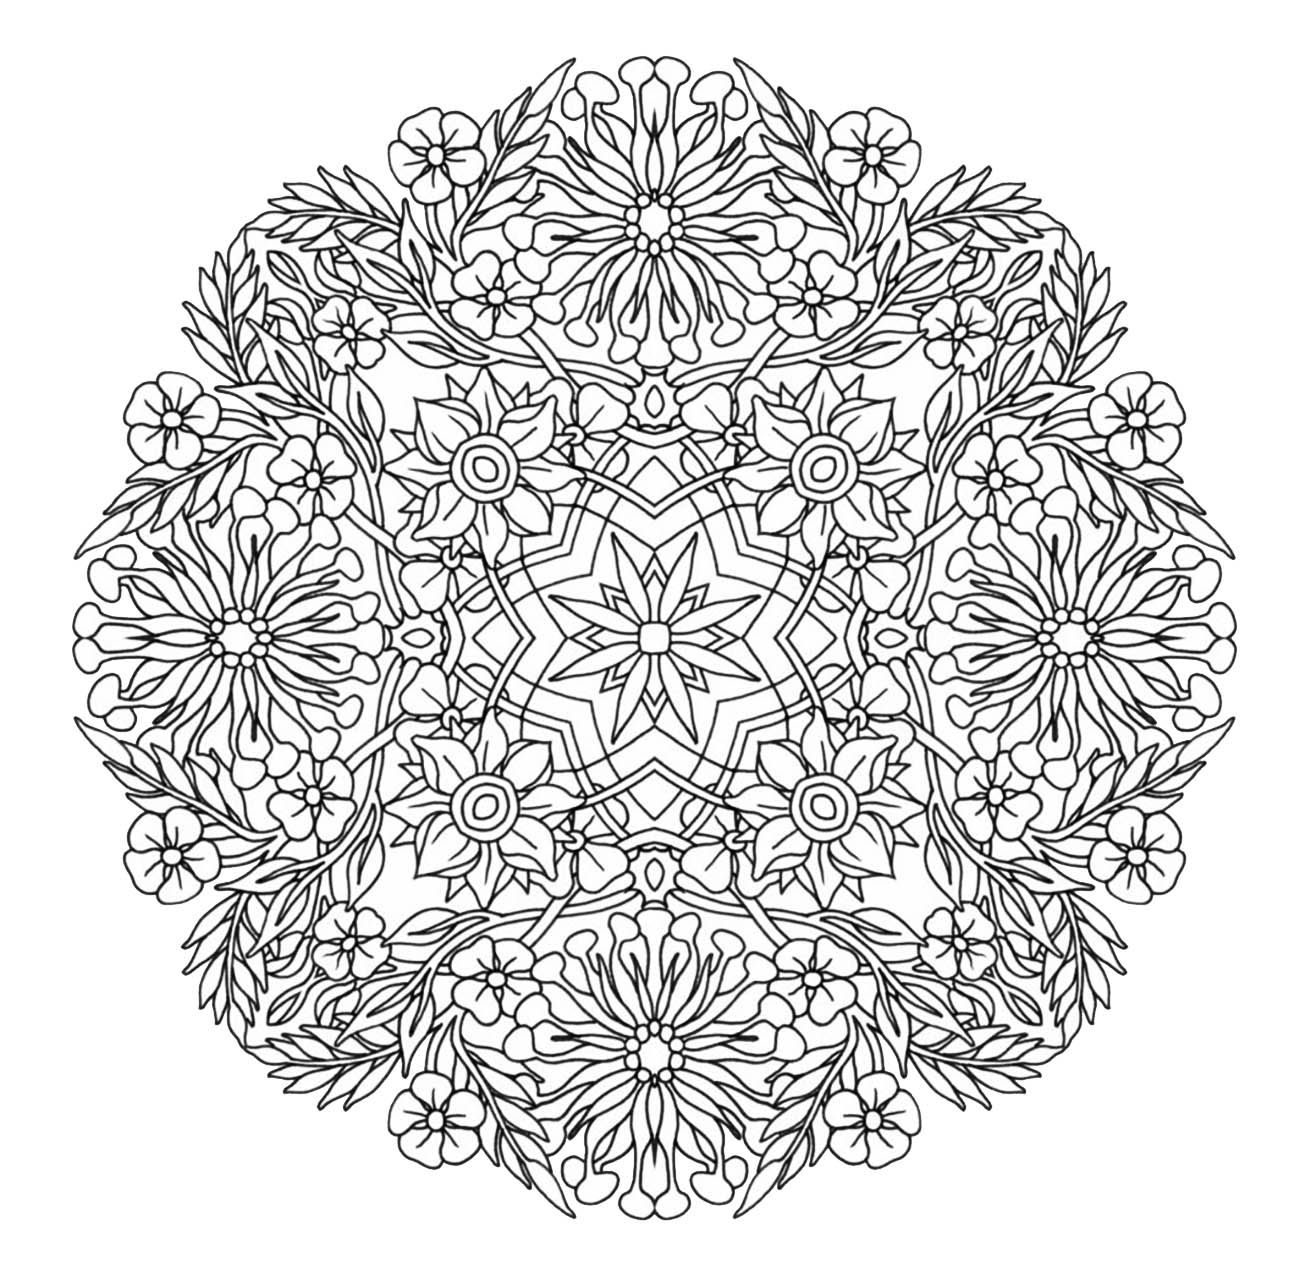 Advanced Mandala Complex Creative Design Coloring Pages Printable And Book To Print For Free Find More Online Kids Adults